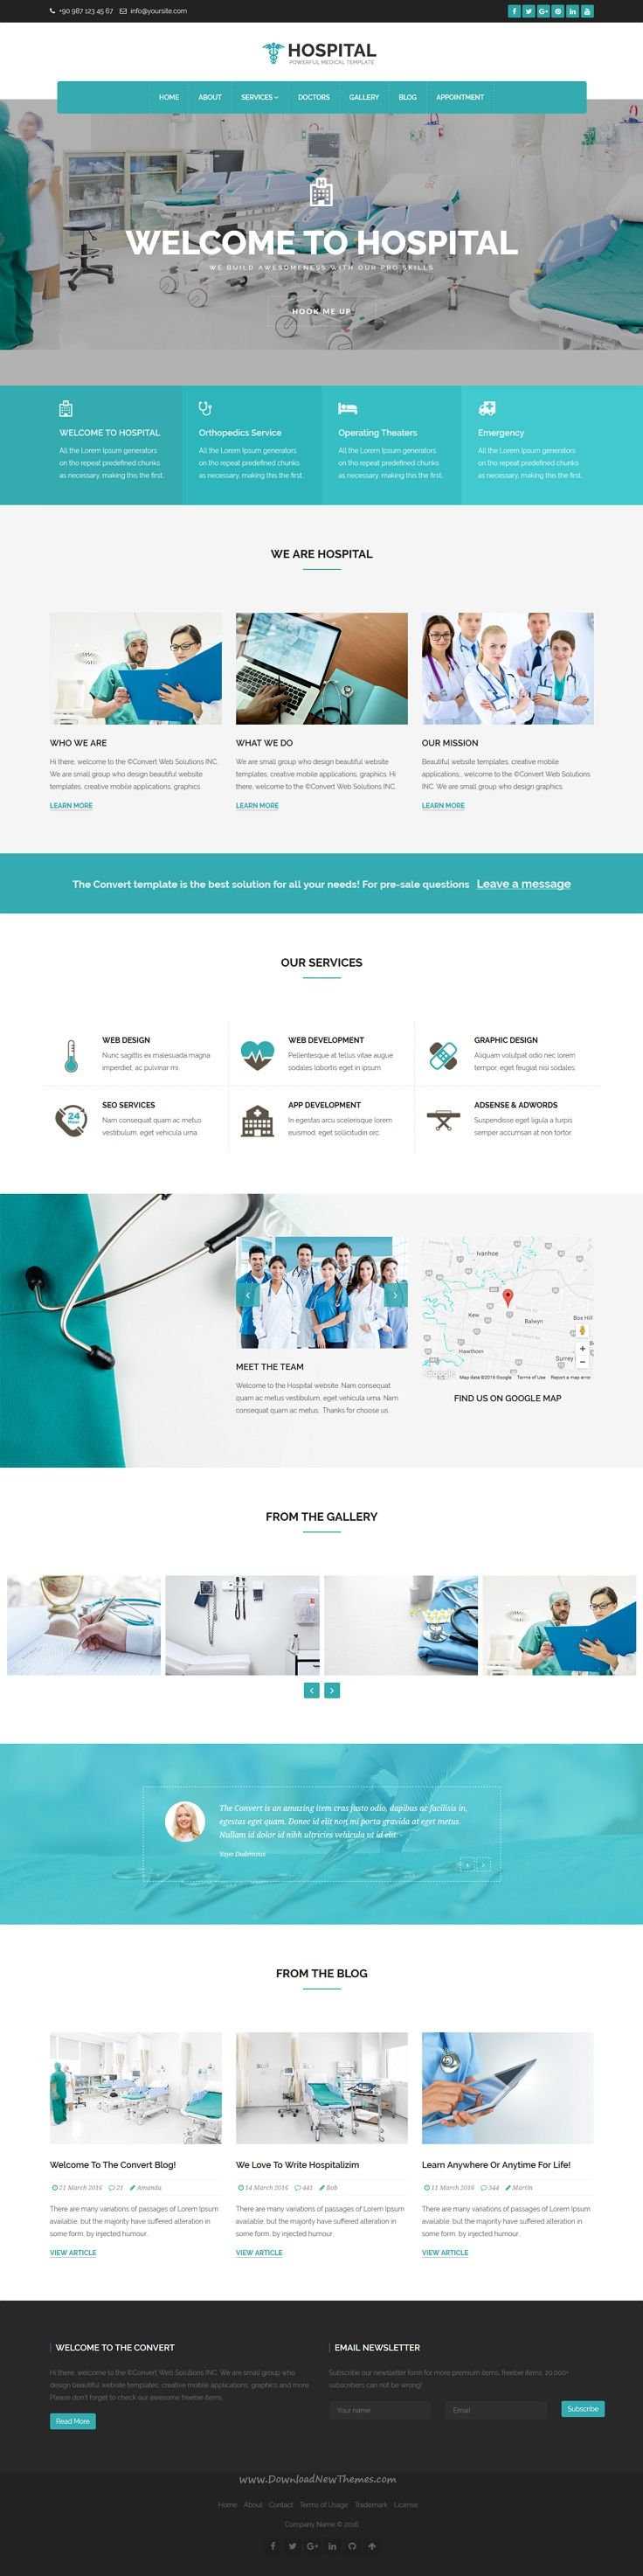 Convert is a professionally design #Bootstrap theme for multipurpose #medical #hospital website with 150+ valid HTML files, 20+ stunning homepage examples download now➝ https://themeforest.net/item/convert-html-responsive-multipurpose-site-template/16821508?ref=Datasata